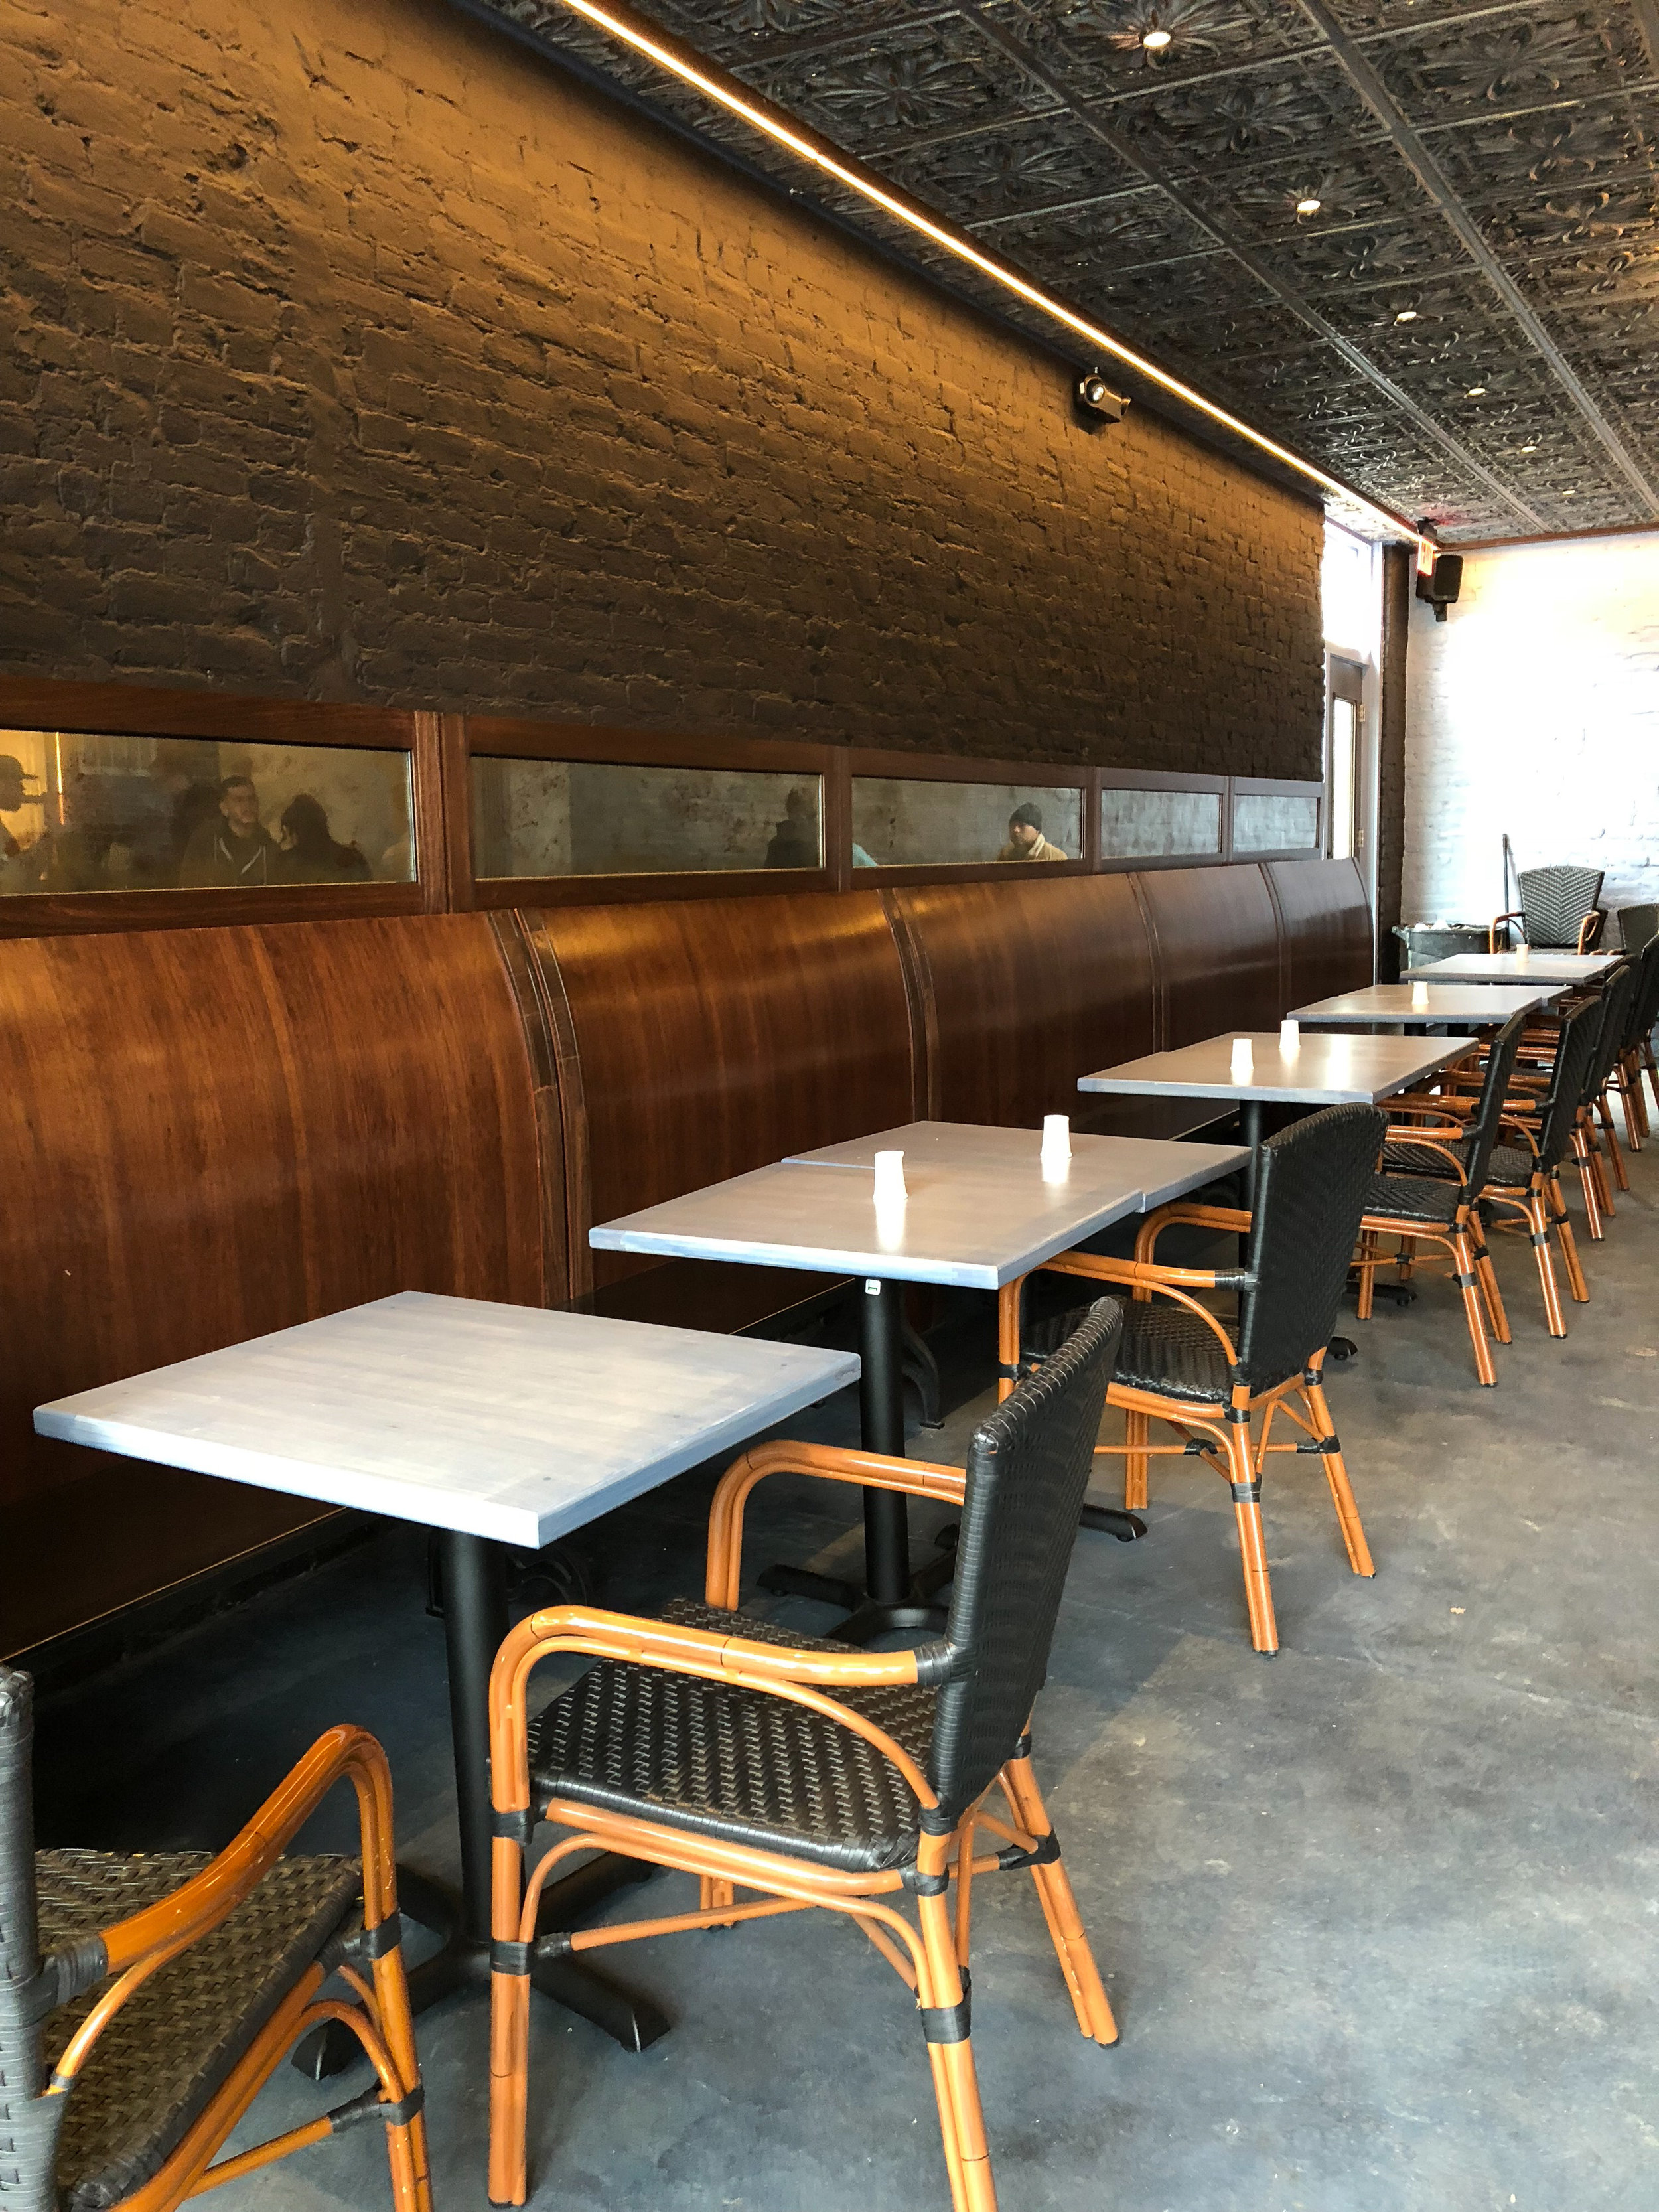 Cafe Clang! - Tabletops and benches